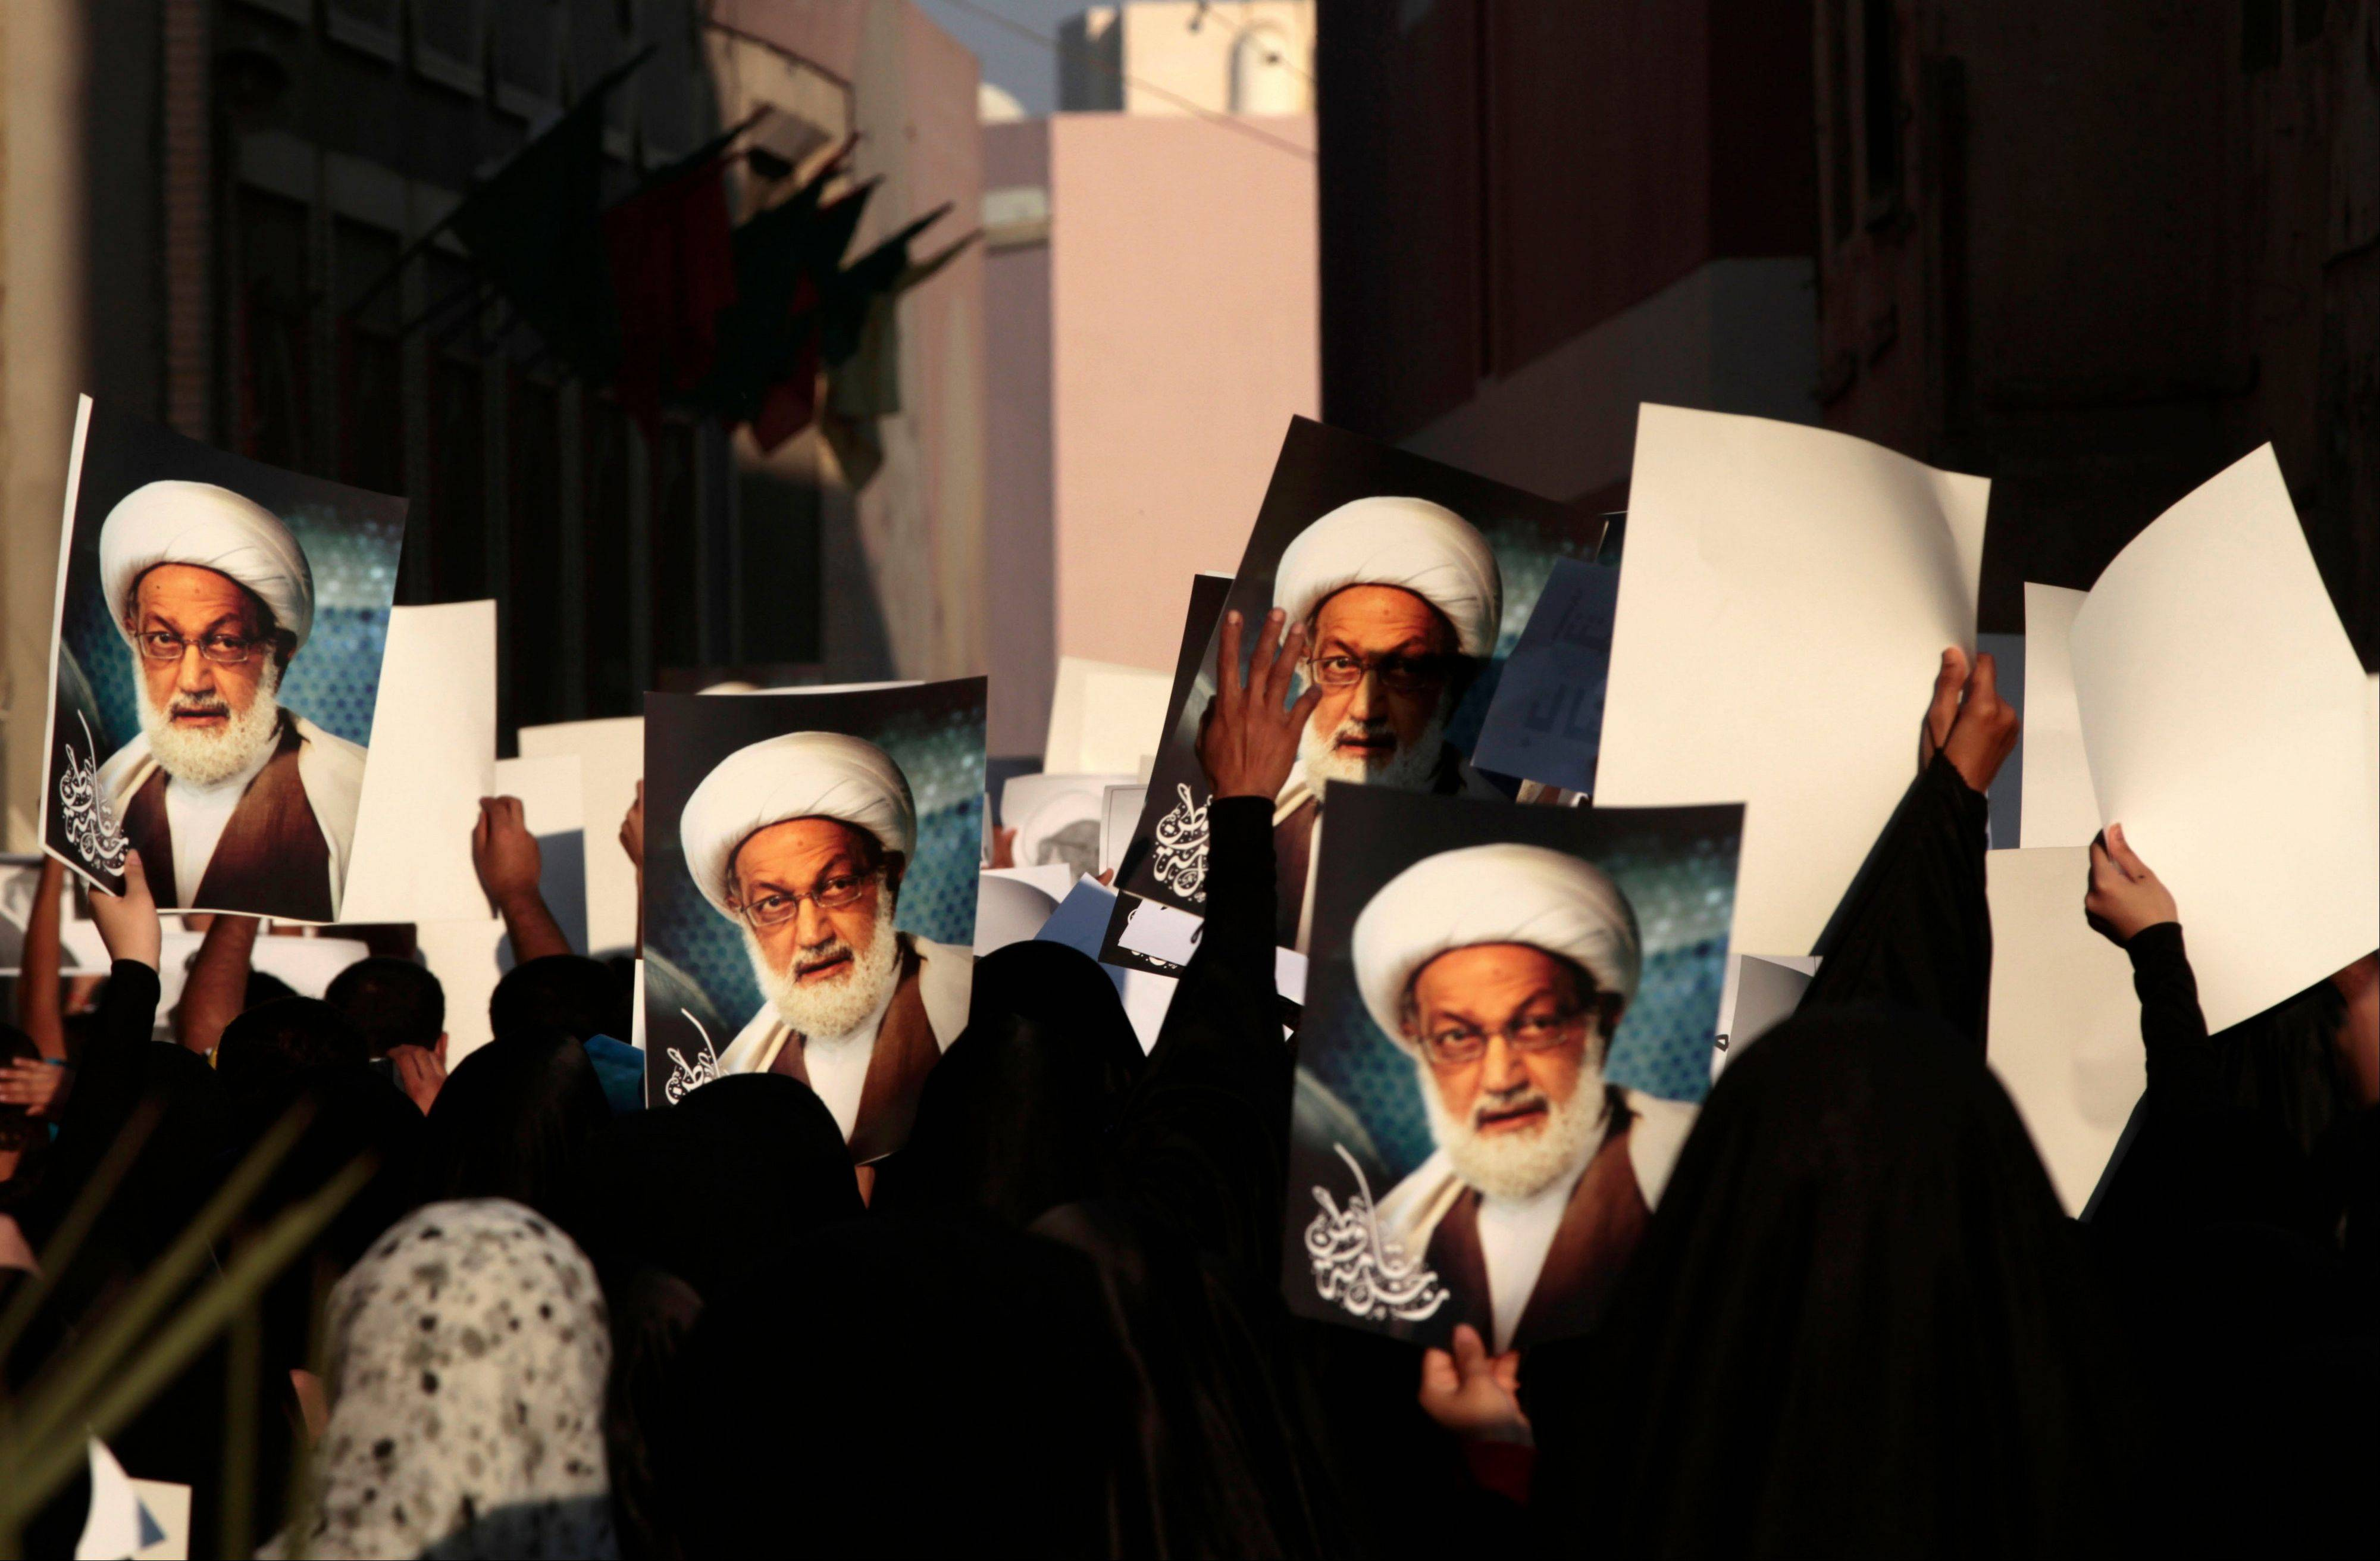 Bahraini anti-government protesters hold pictures of top Shiite cleric Sheik Issa Qassim during a march in Duraz, Bahrain, Friday that demonstrators said was held out of concern Qassim would be arrested. Demonstrations were held in several villages nationwide Friday, challenging a new government ban on protests.